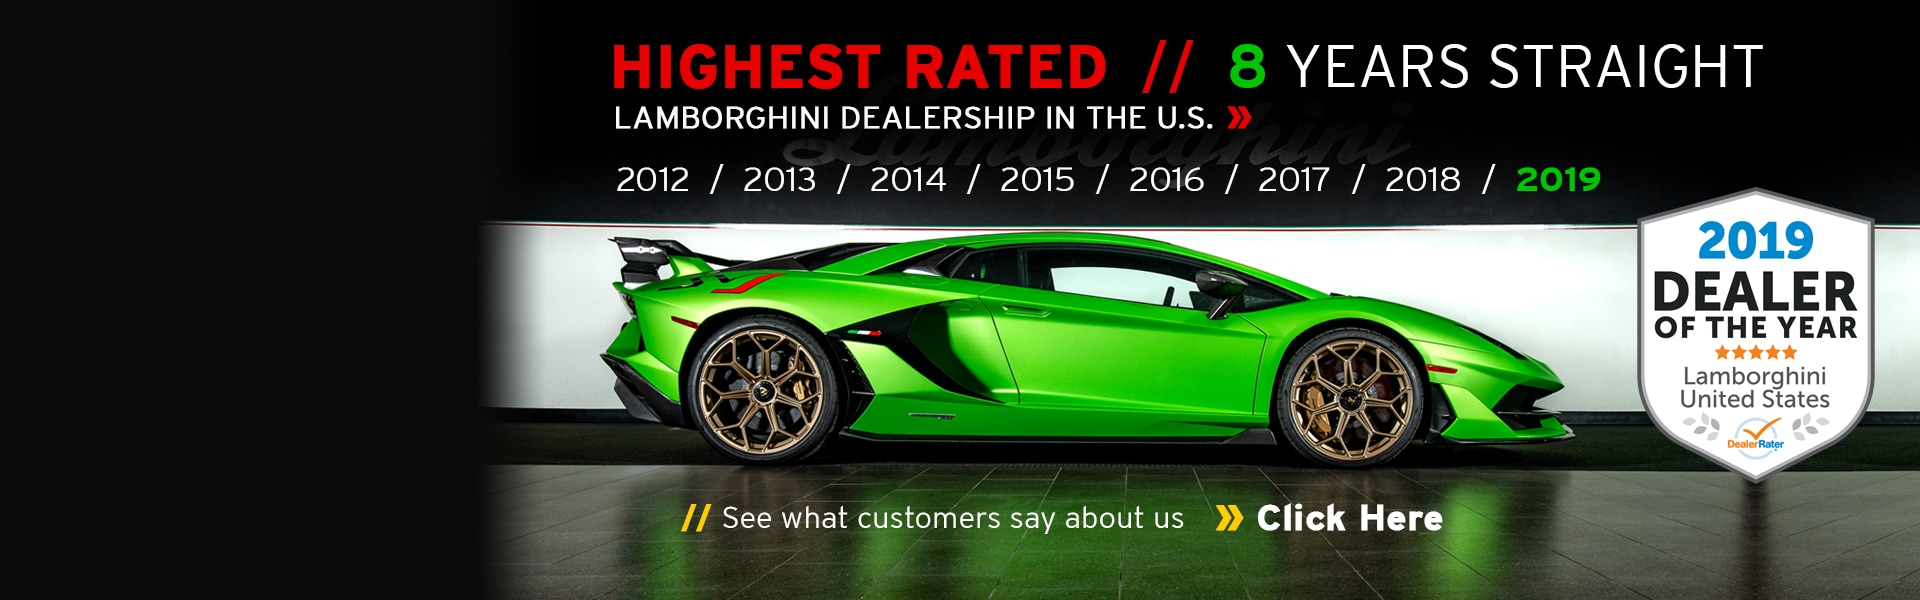 Lamborghini Dallas Lamborghini Dealership Near Dallas Tx Richardson